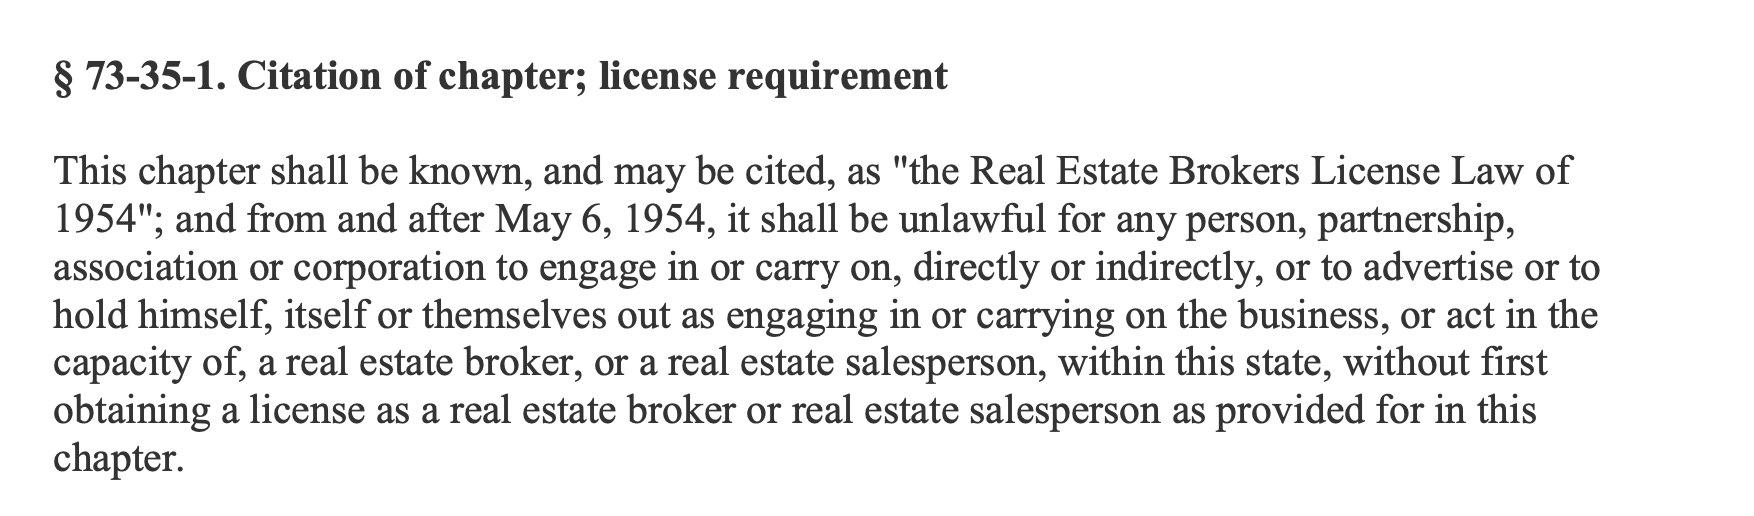 is wholesaling real estate legal in mississippi